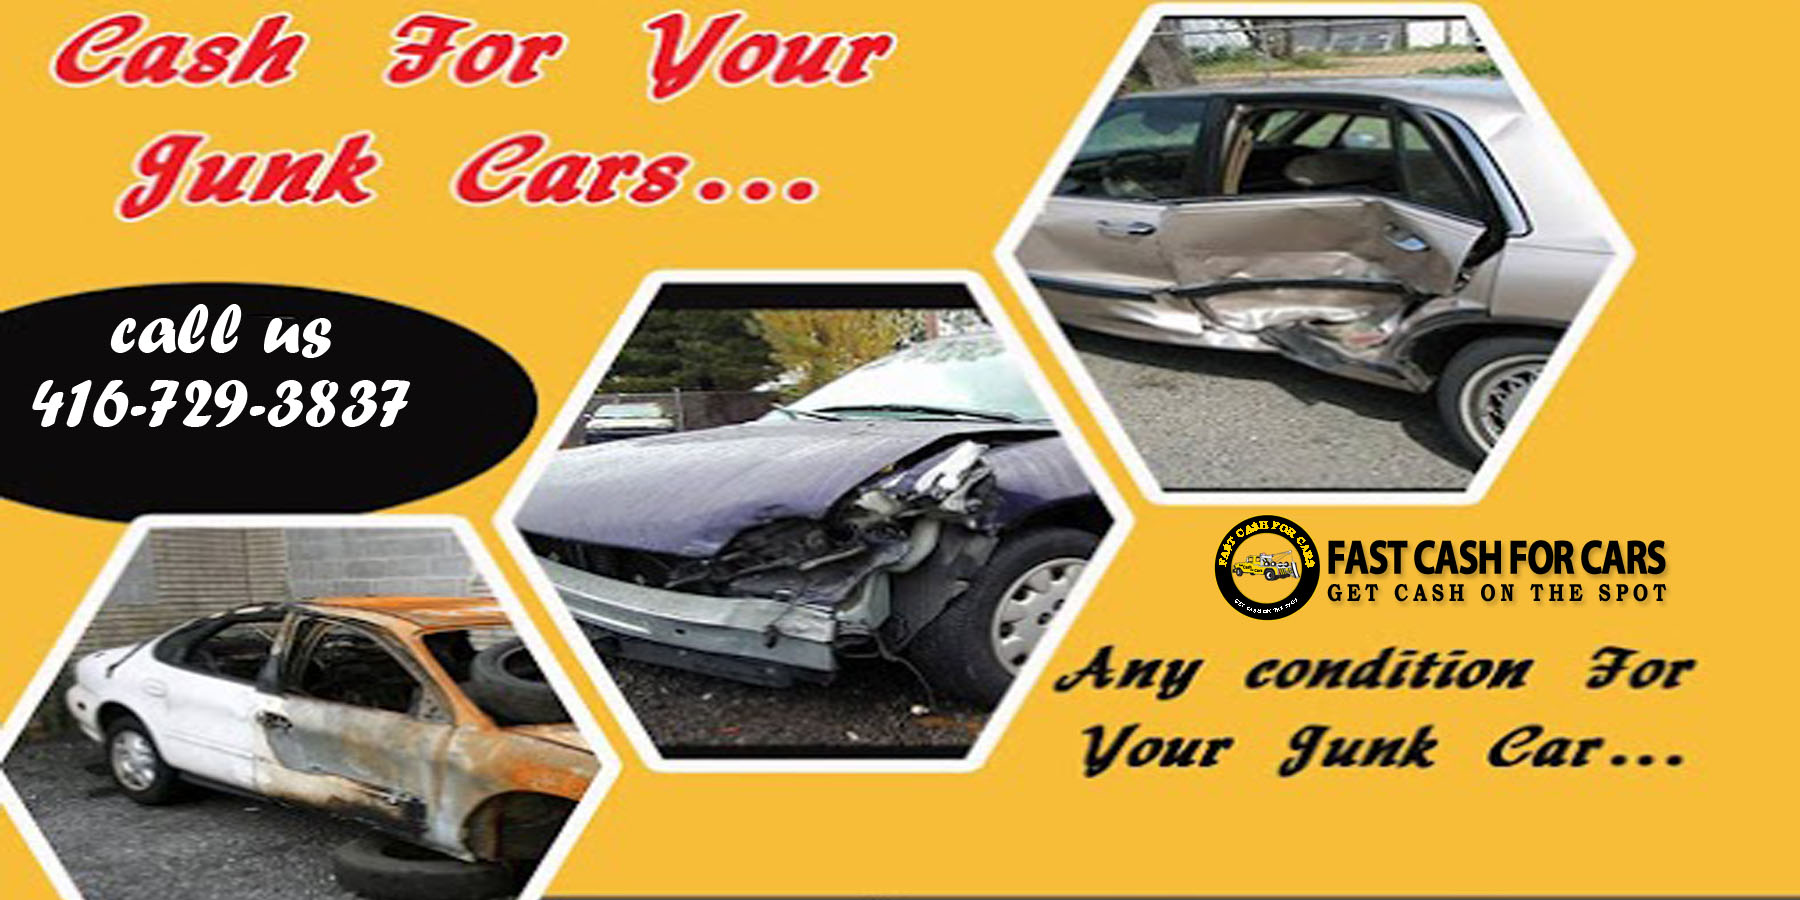 24 Hour Junk Cars >> Fast Cash For Cars Give A Best Services All Customer My Blog